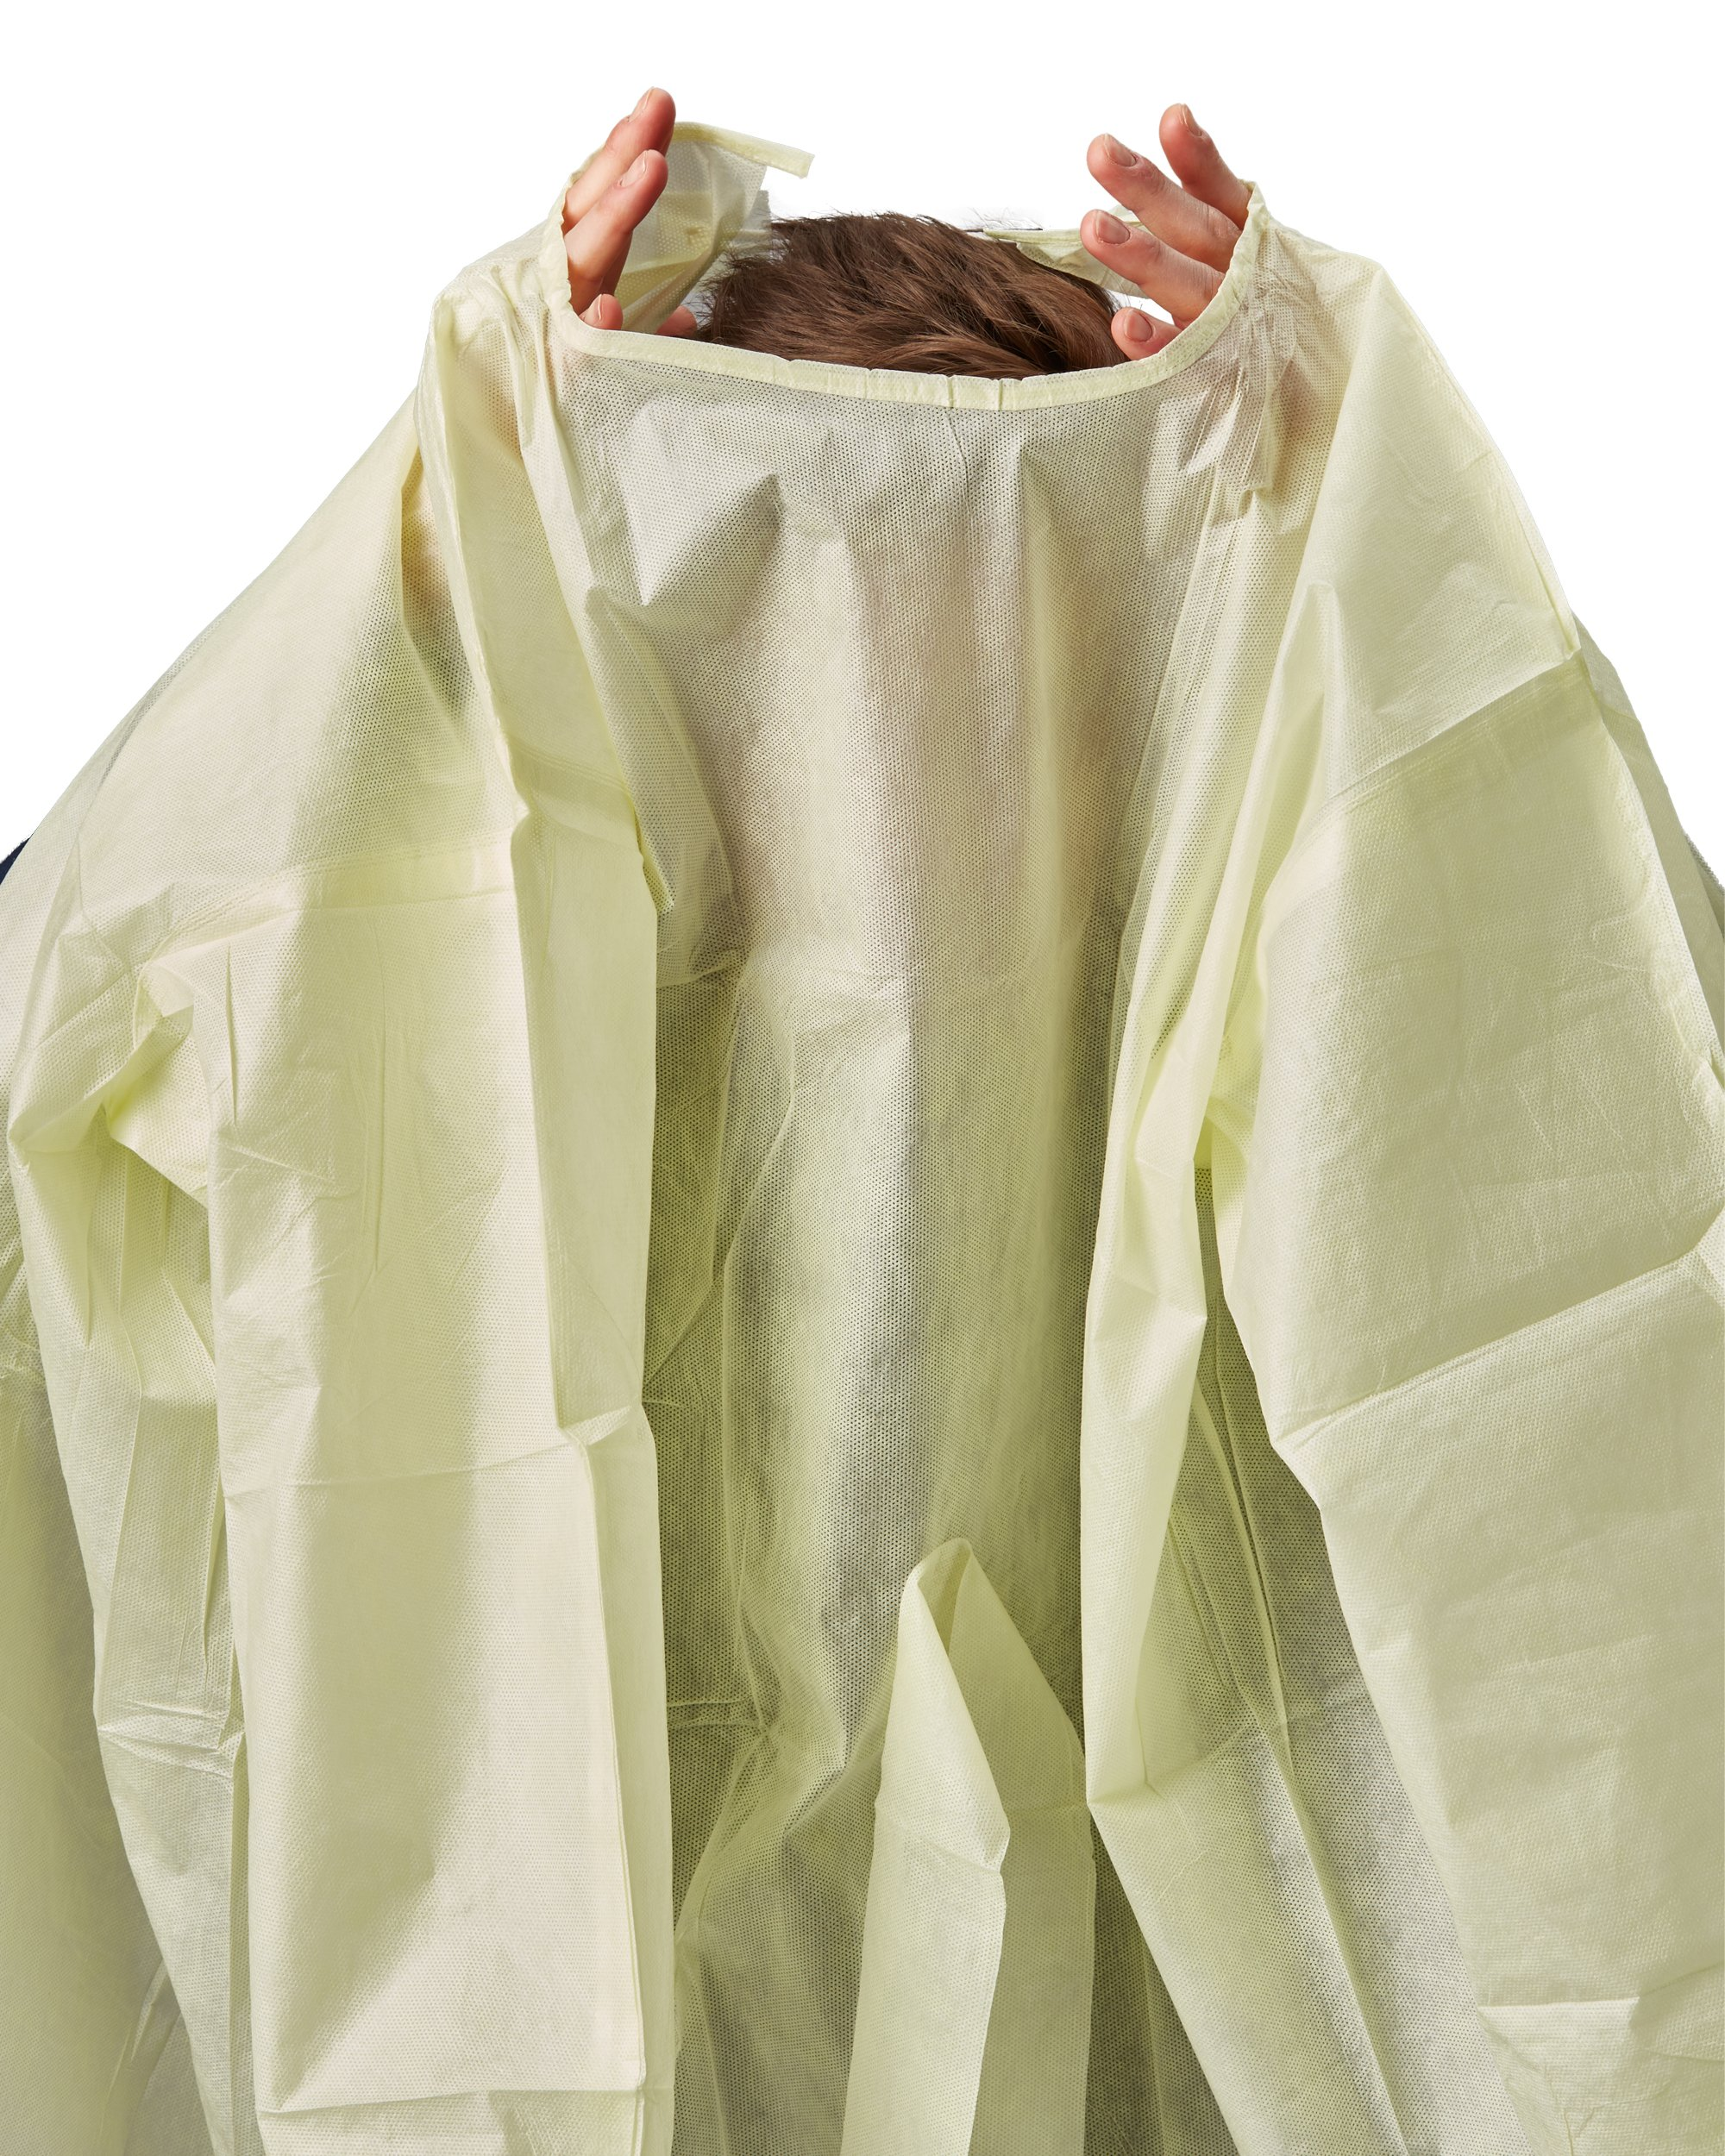 Disposable SMS Polypropylene Isolation Gown, with Elastic cuffs, Breathable, flexible, and fluid resistant. Professional Surgical gowns & Lab Coats. (10 Units, Regular) by AMD Ritmed® (Image #3)